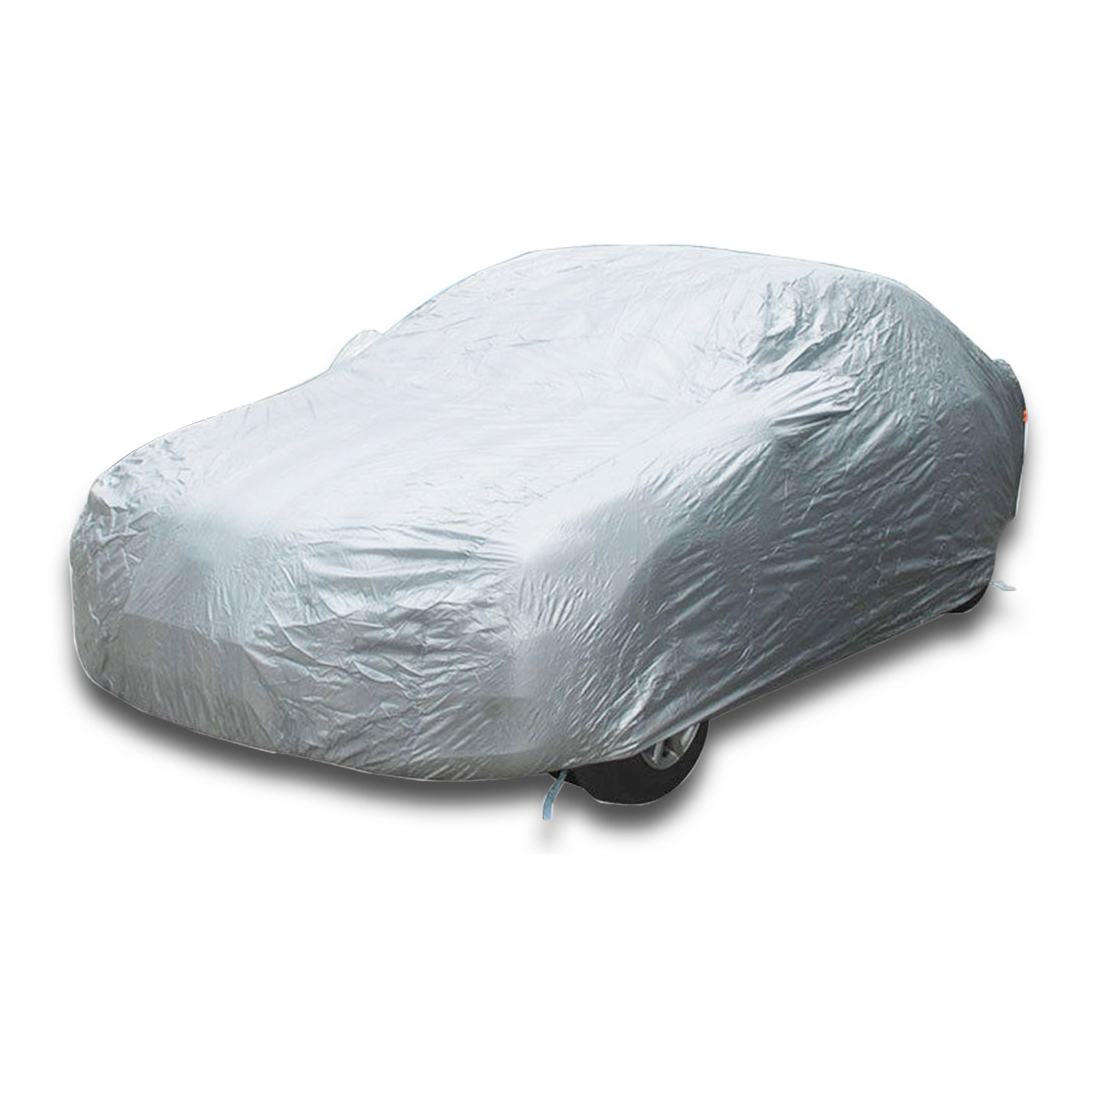 Budge Lite Car Cover Fits Buick Century 2003UV ProtectBreathable